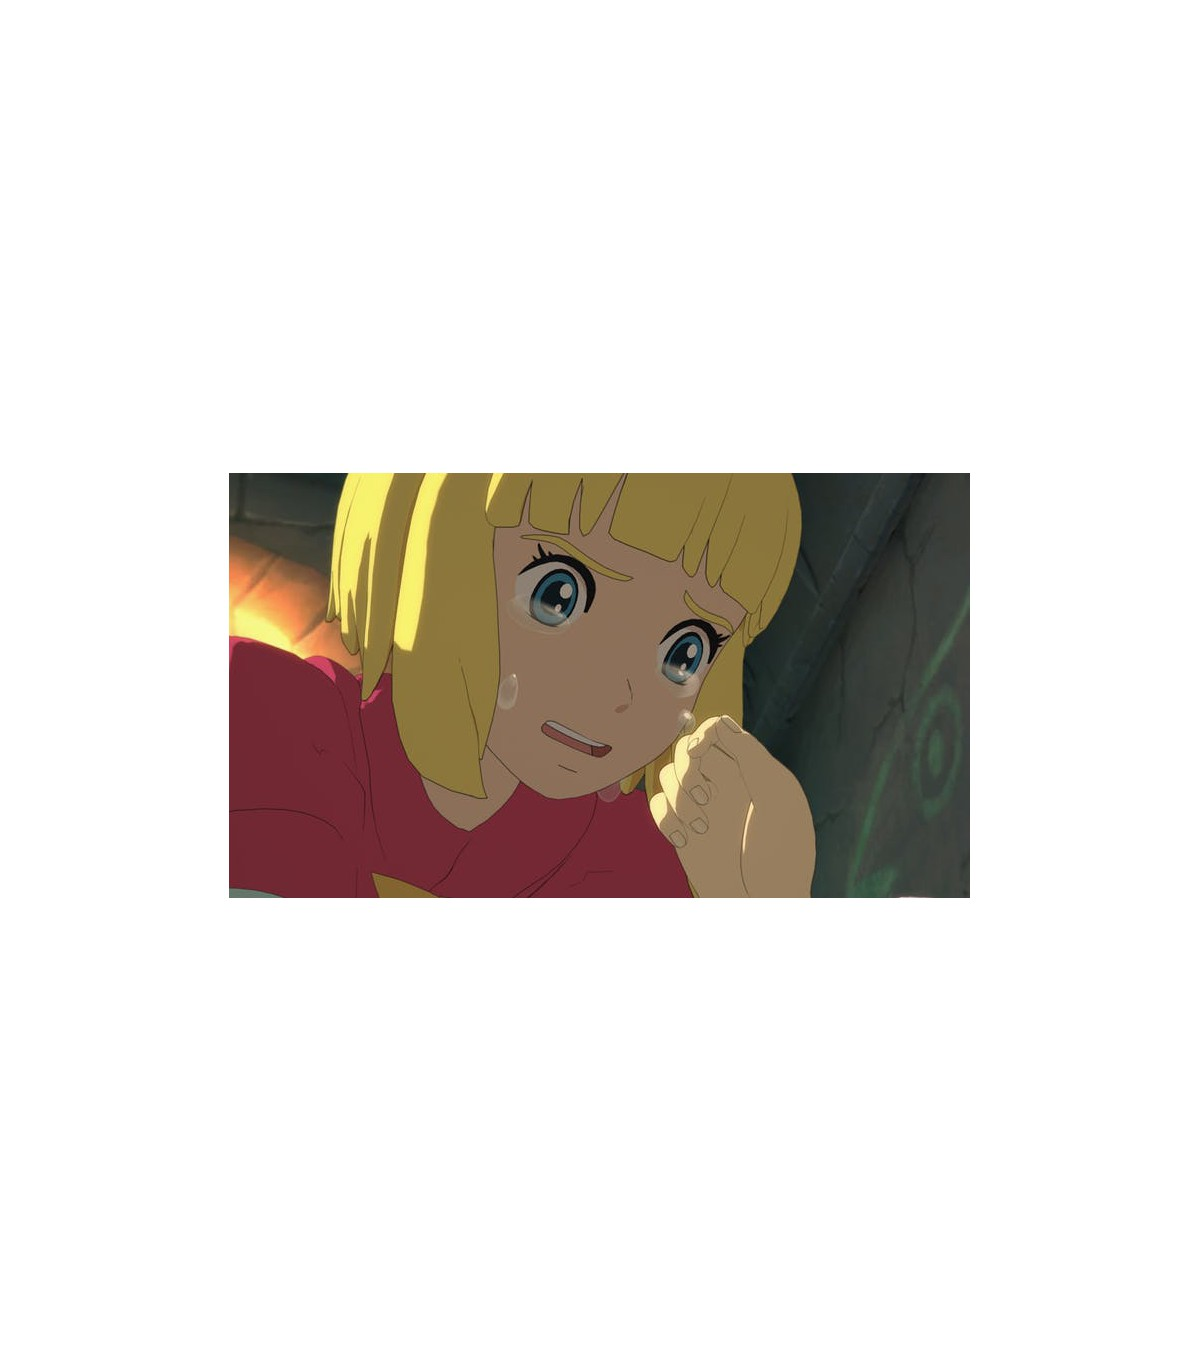 بازی Ni no Kuni II: Revenant Kingdom نسخه Prince's Edition -